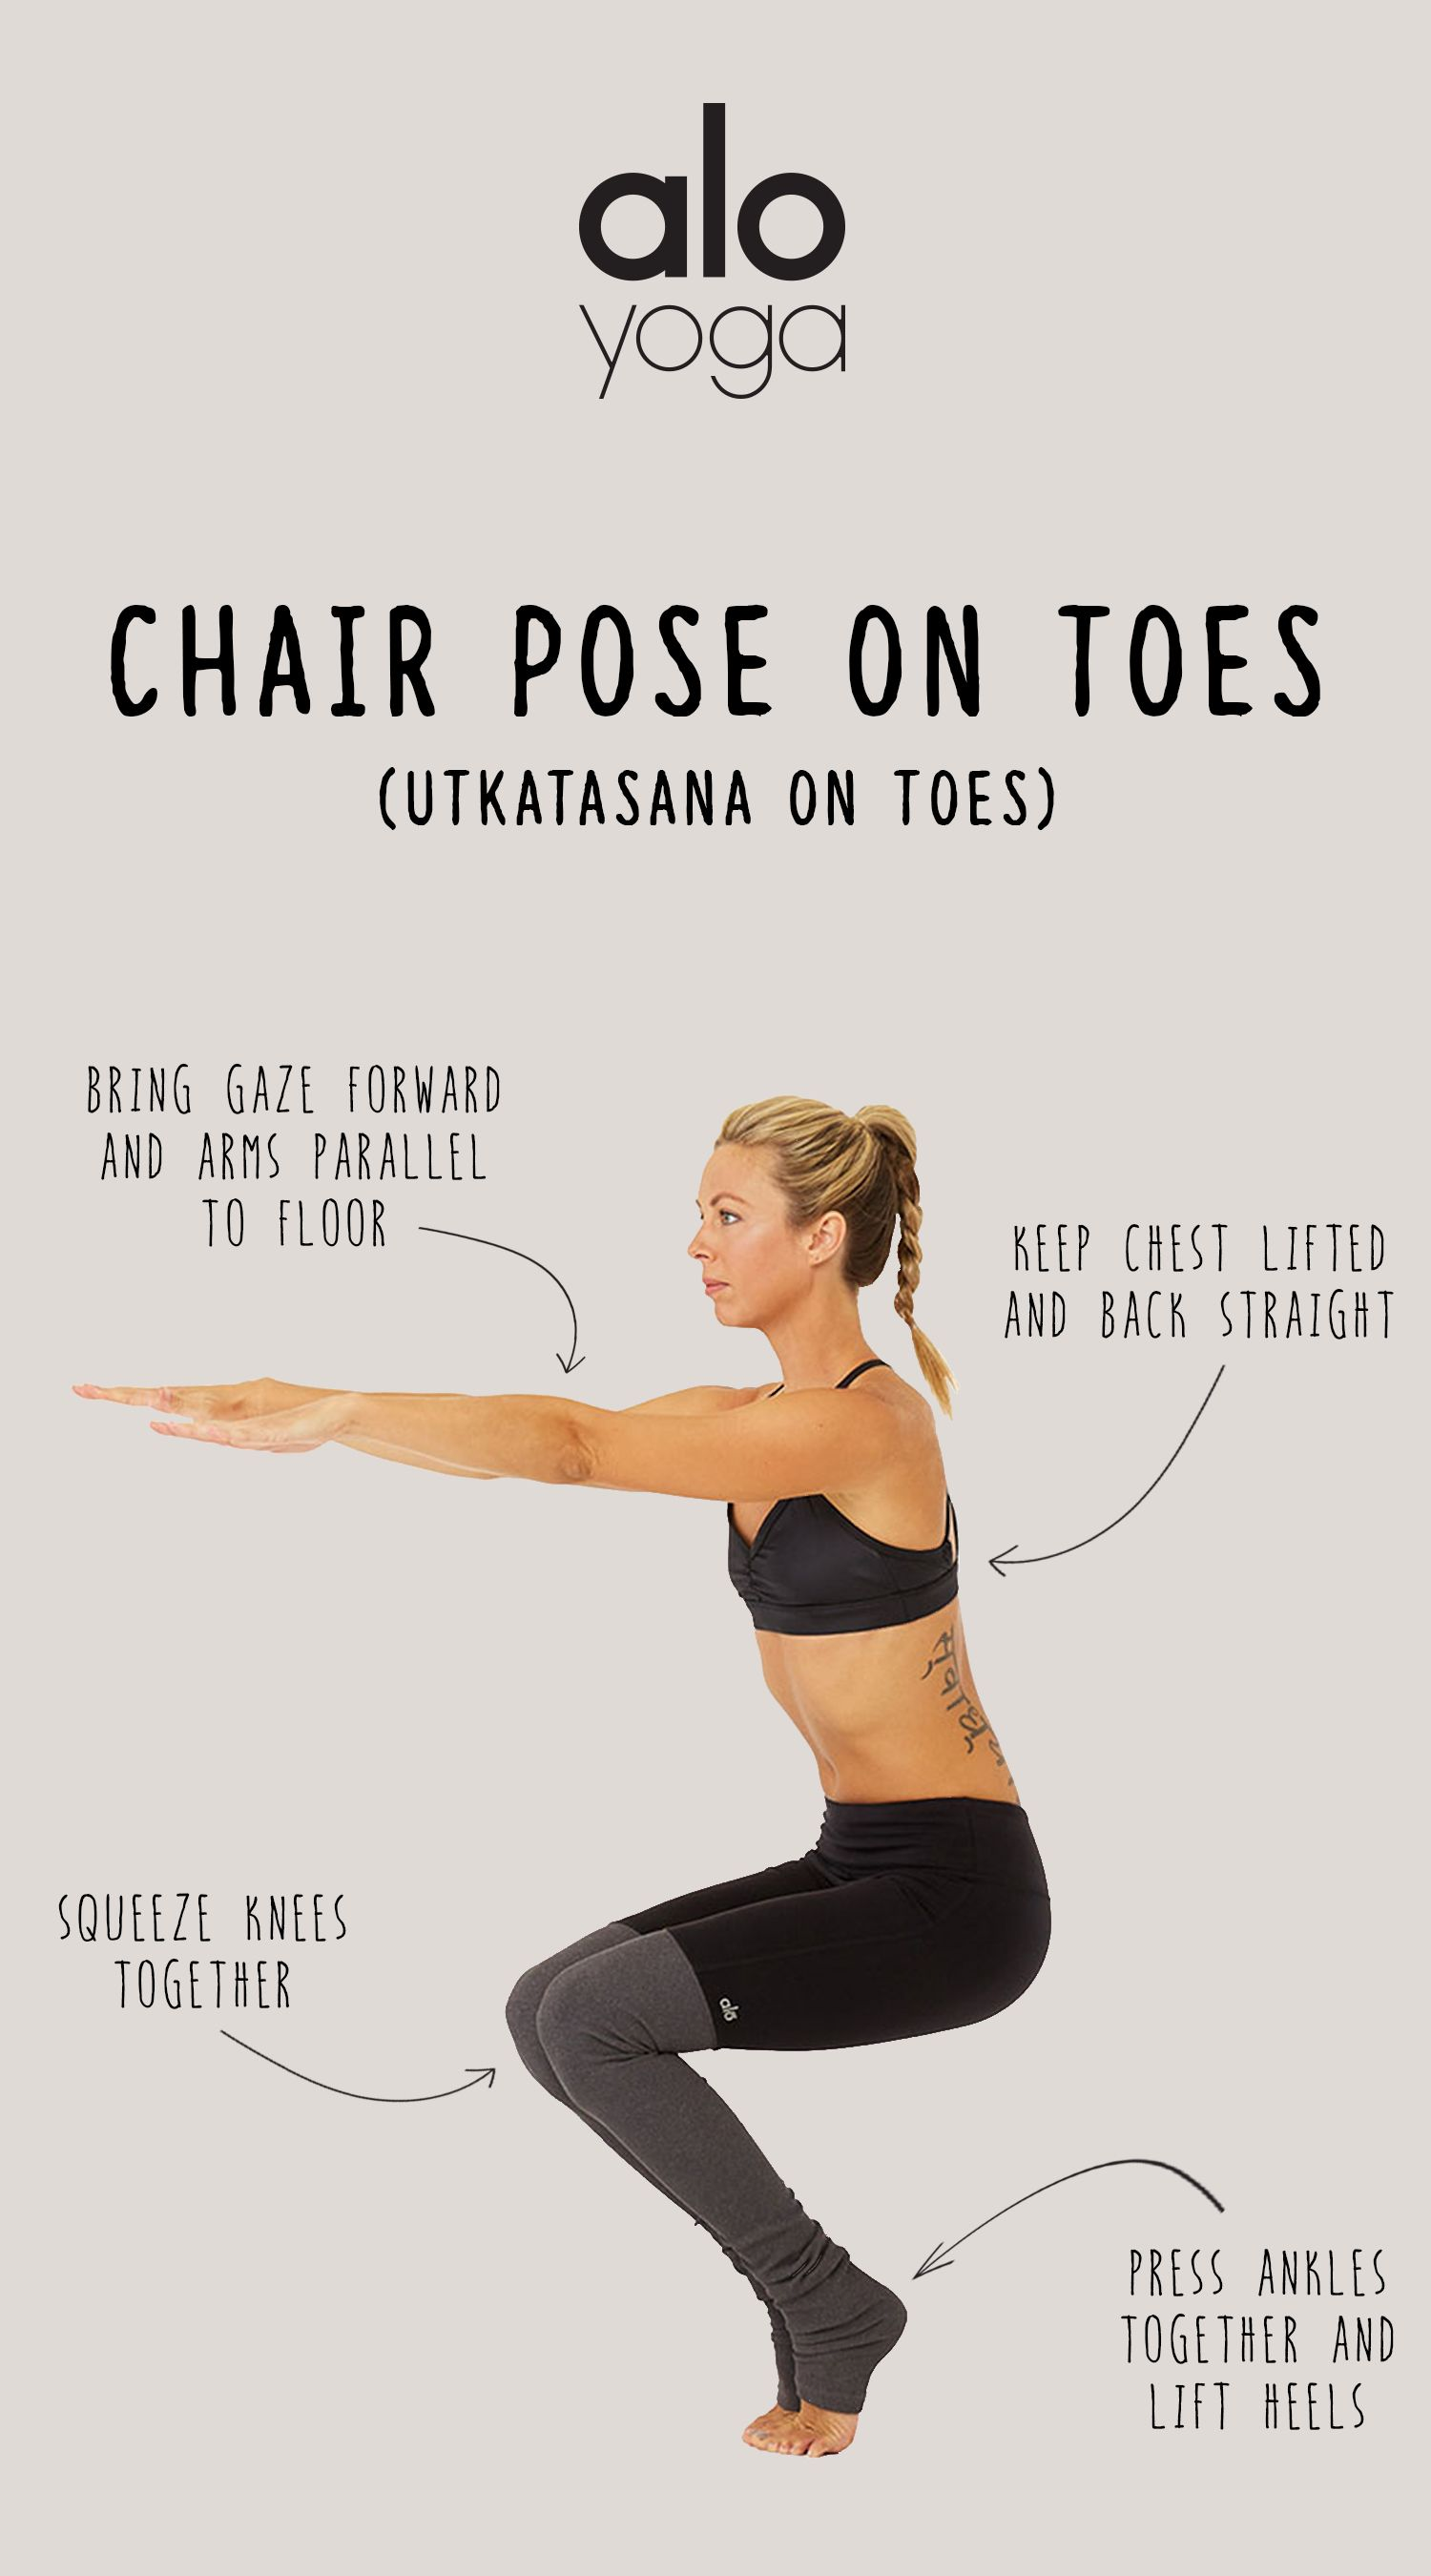 How To Chair Pose On Toes Yoga Yogagoals Chairpose Yogainspiration Yoga Help Yoga For Beginners Yoga Benefits